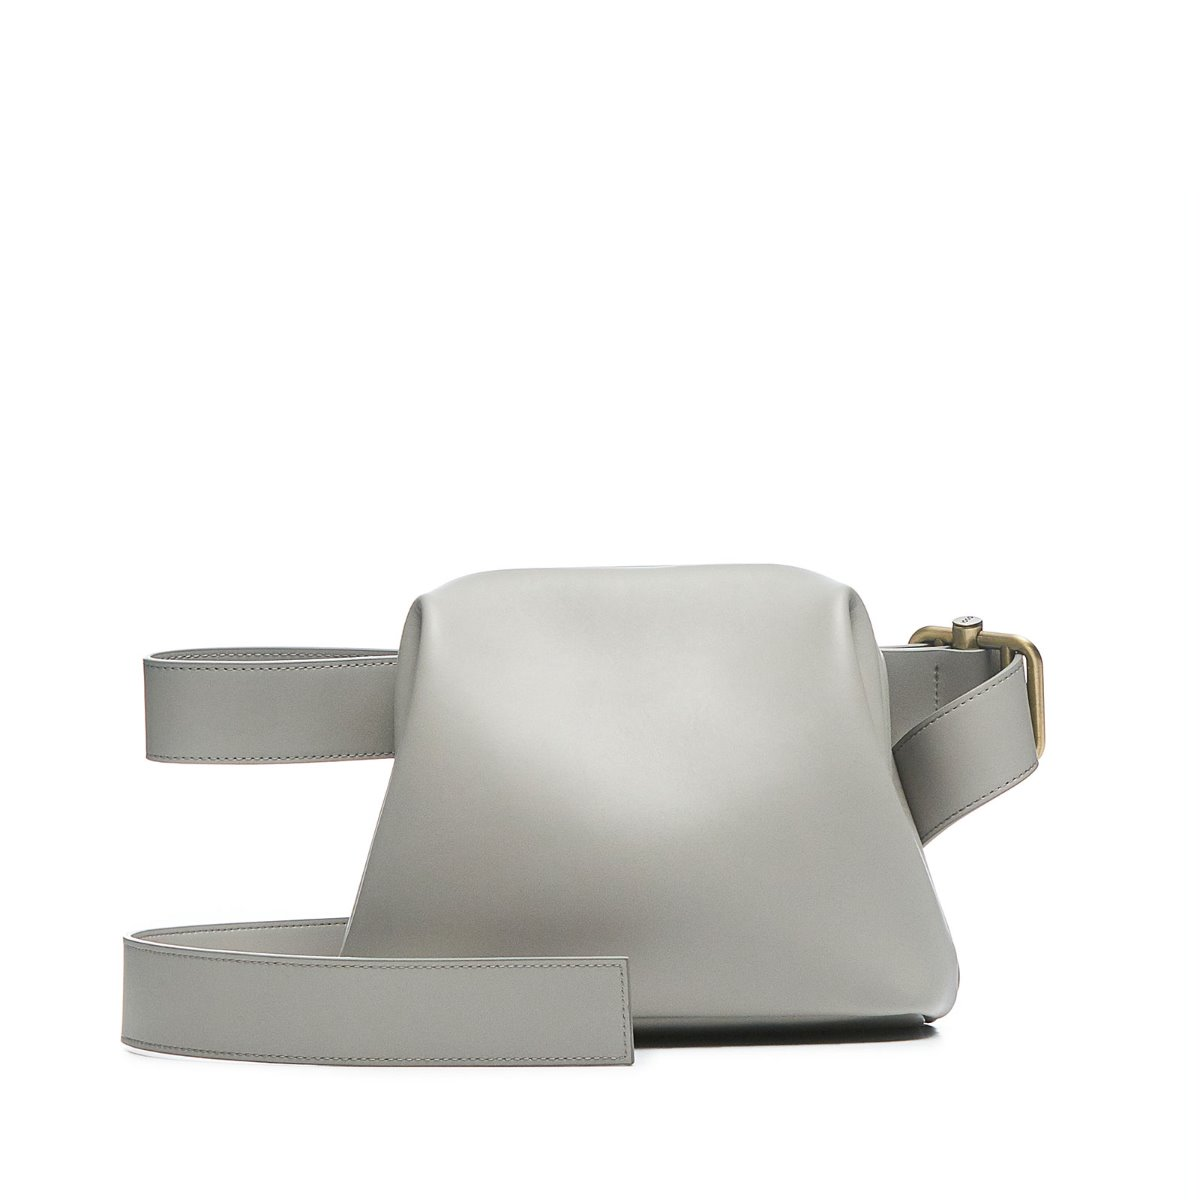 MINI BROT [LIGHT GRAY]